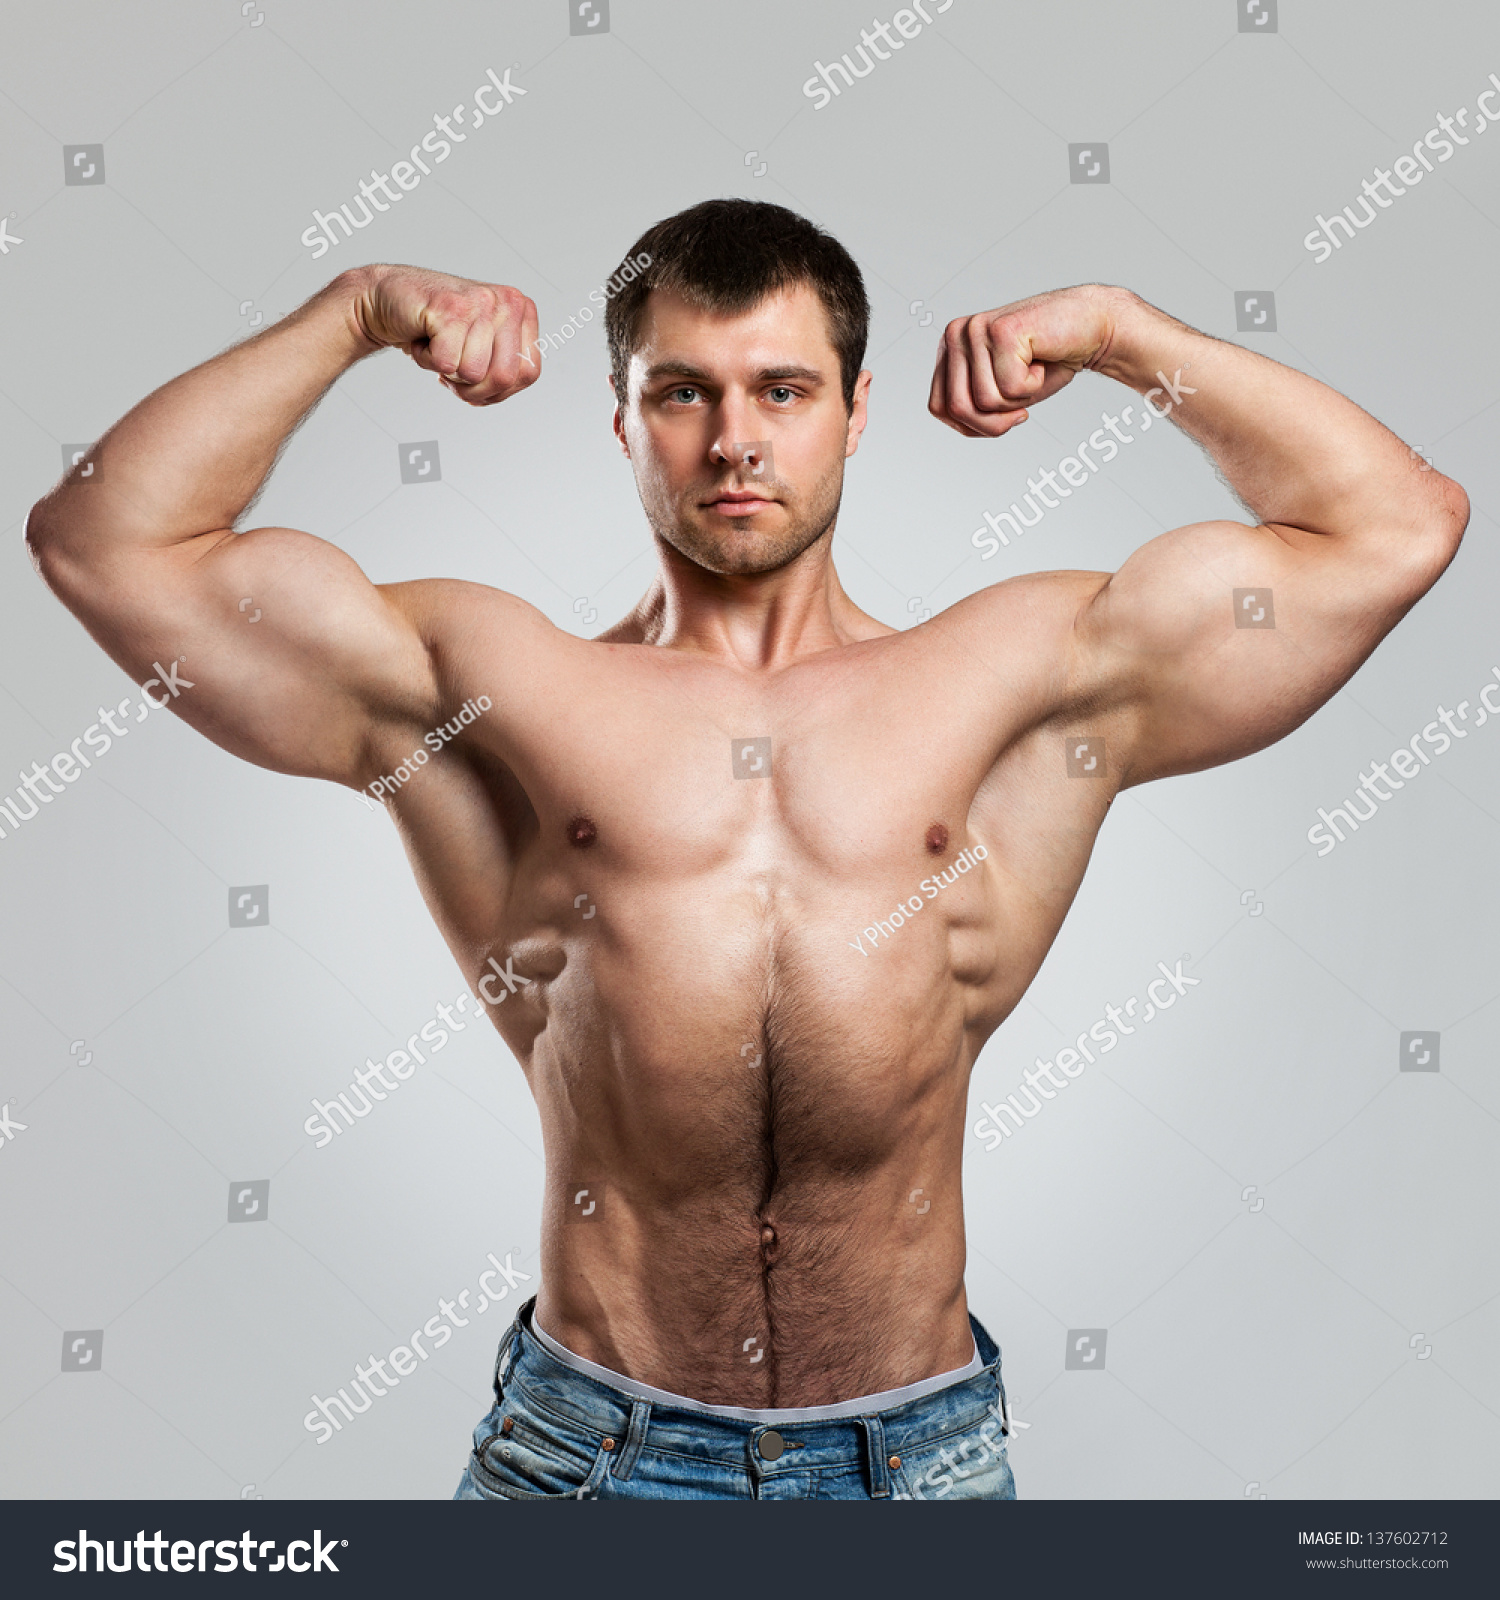 Are Muscular Men More Attractive - Girlsaskguys-7276